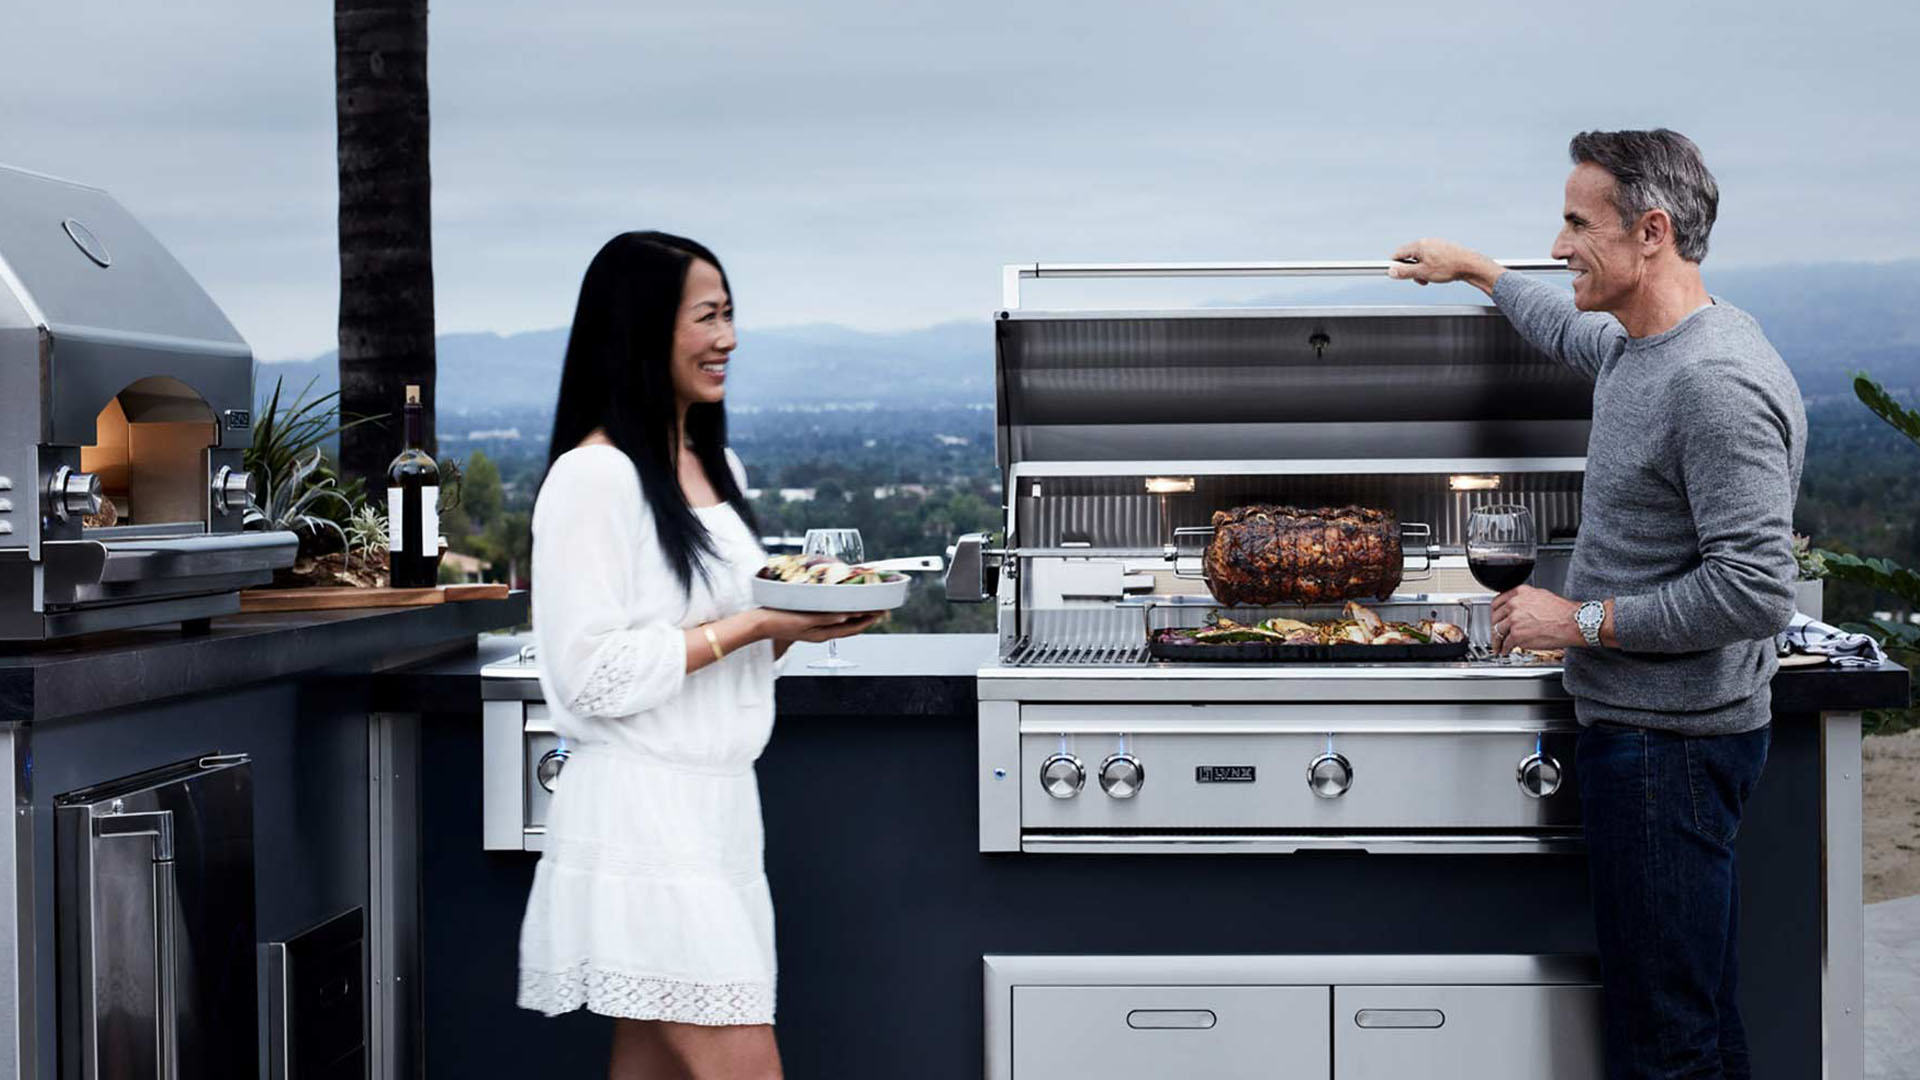 Lynx Grills Outdoor Kitchens Professional Grade Grills Oasis Outdoor Living